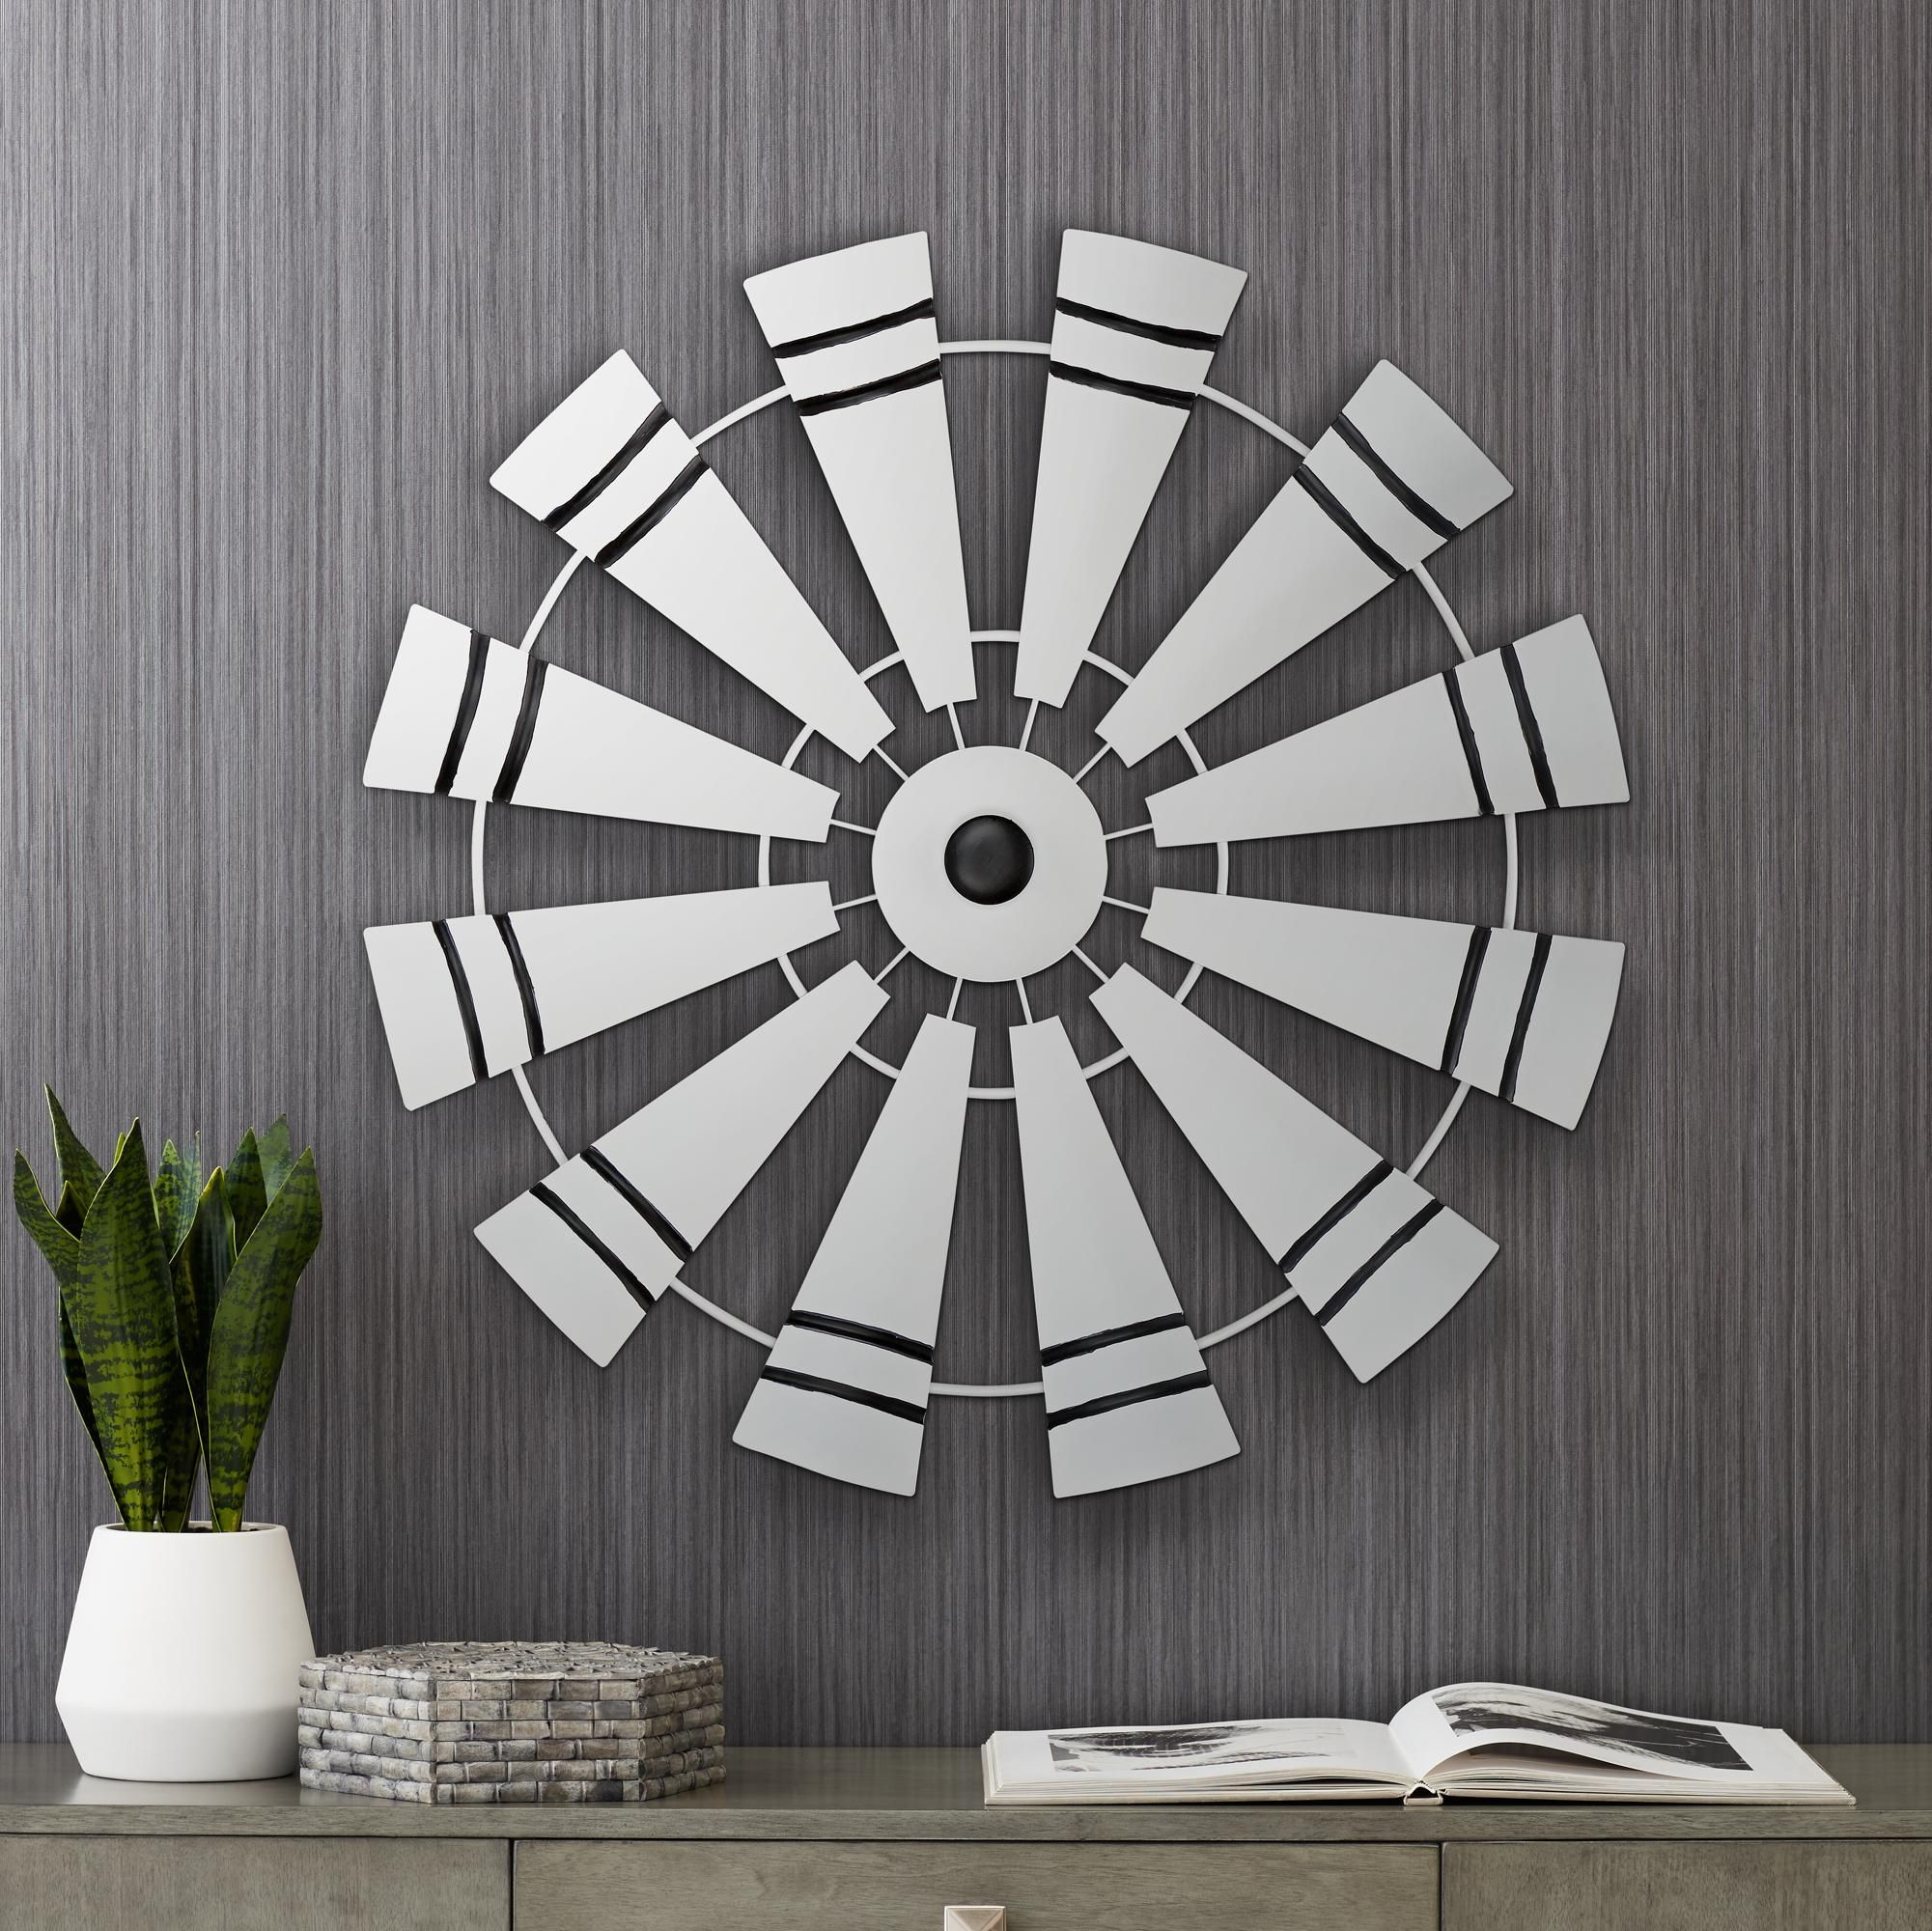 Windmill 27 And One Half Inch Round Black And White Metal Wall Art Large Metal Wall Art Wall Art Plaques Metal Wall Art Diy